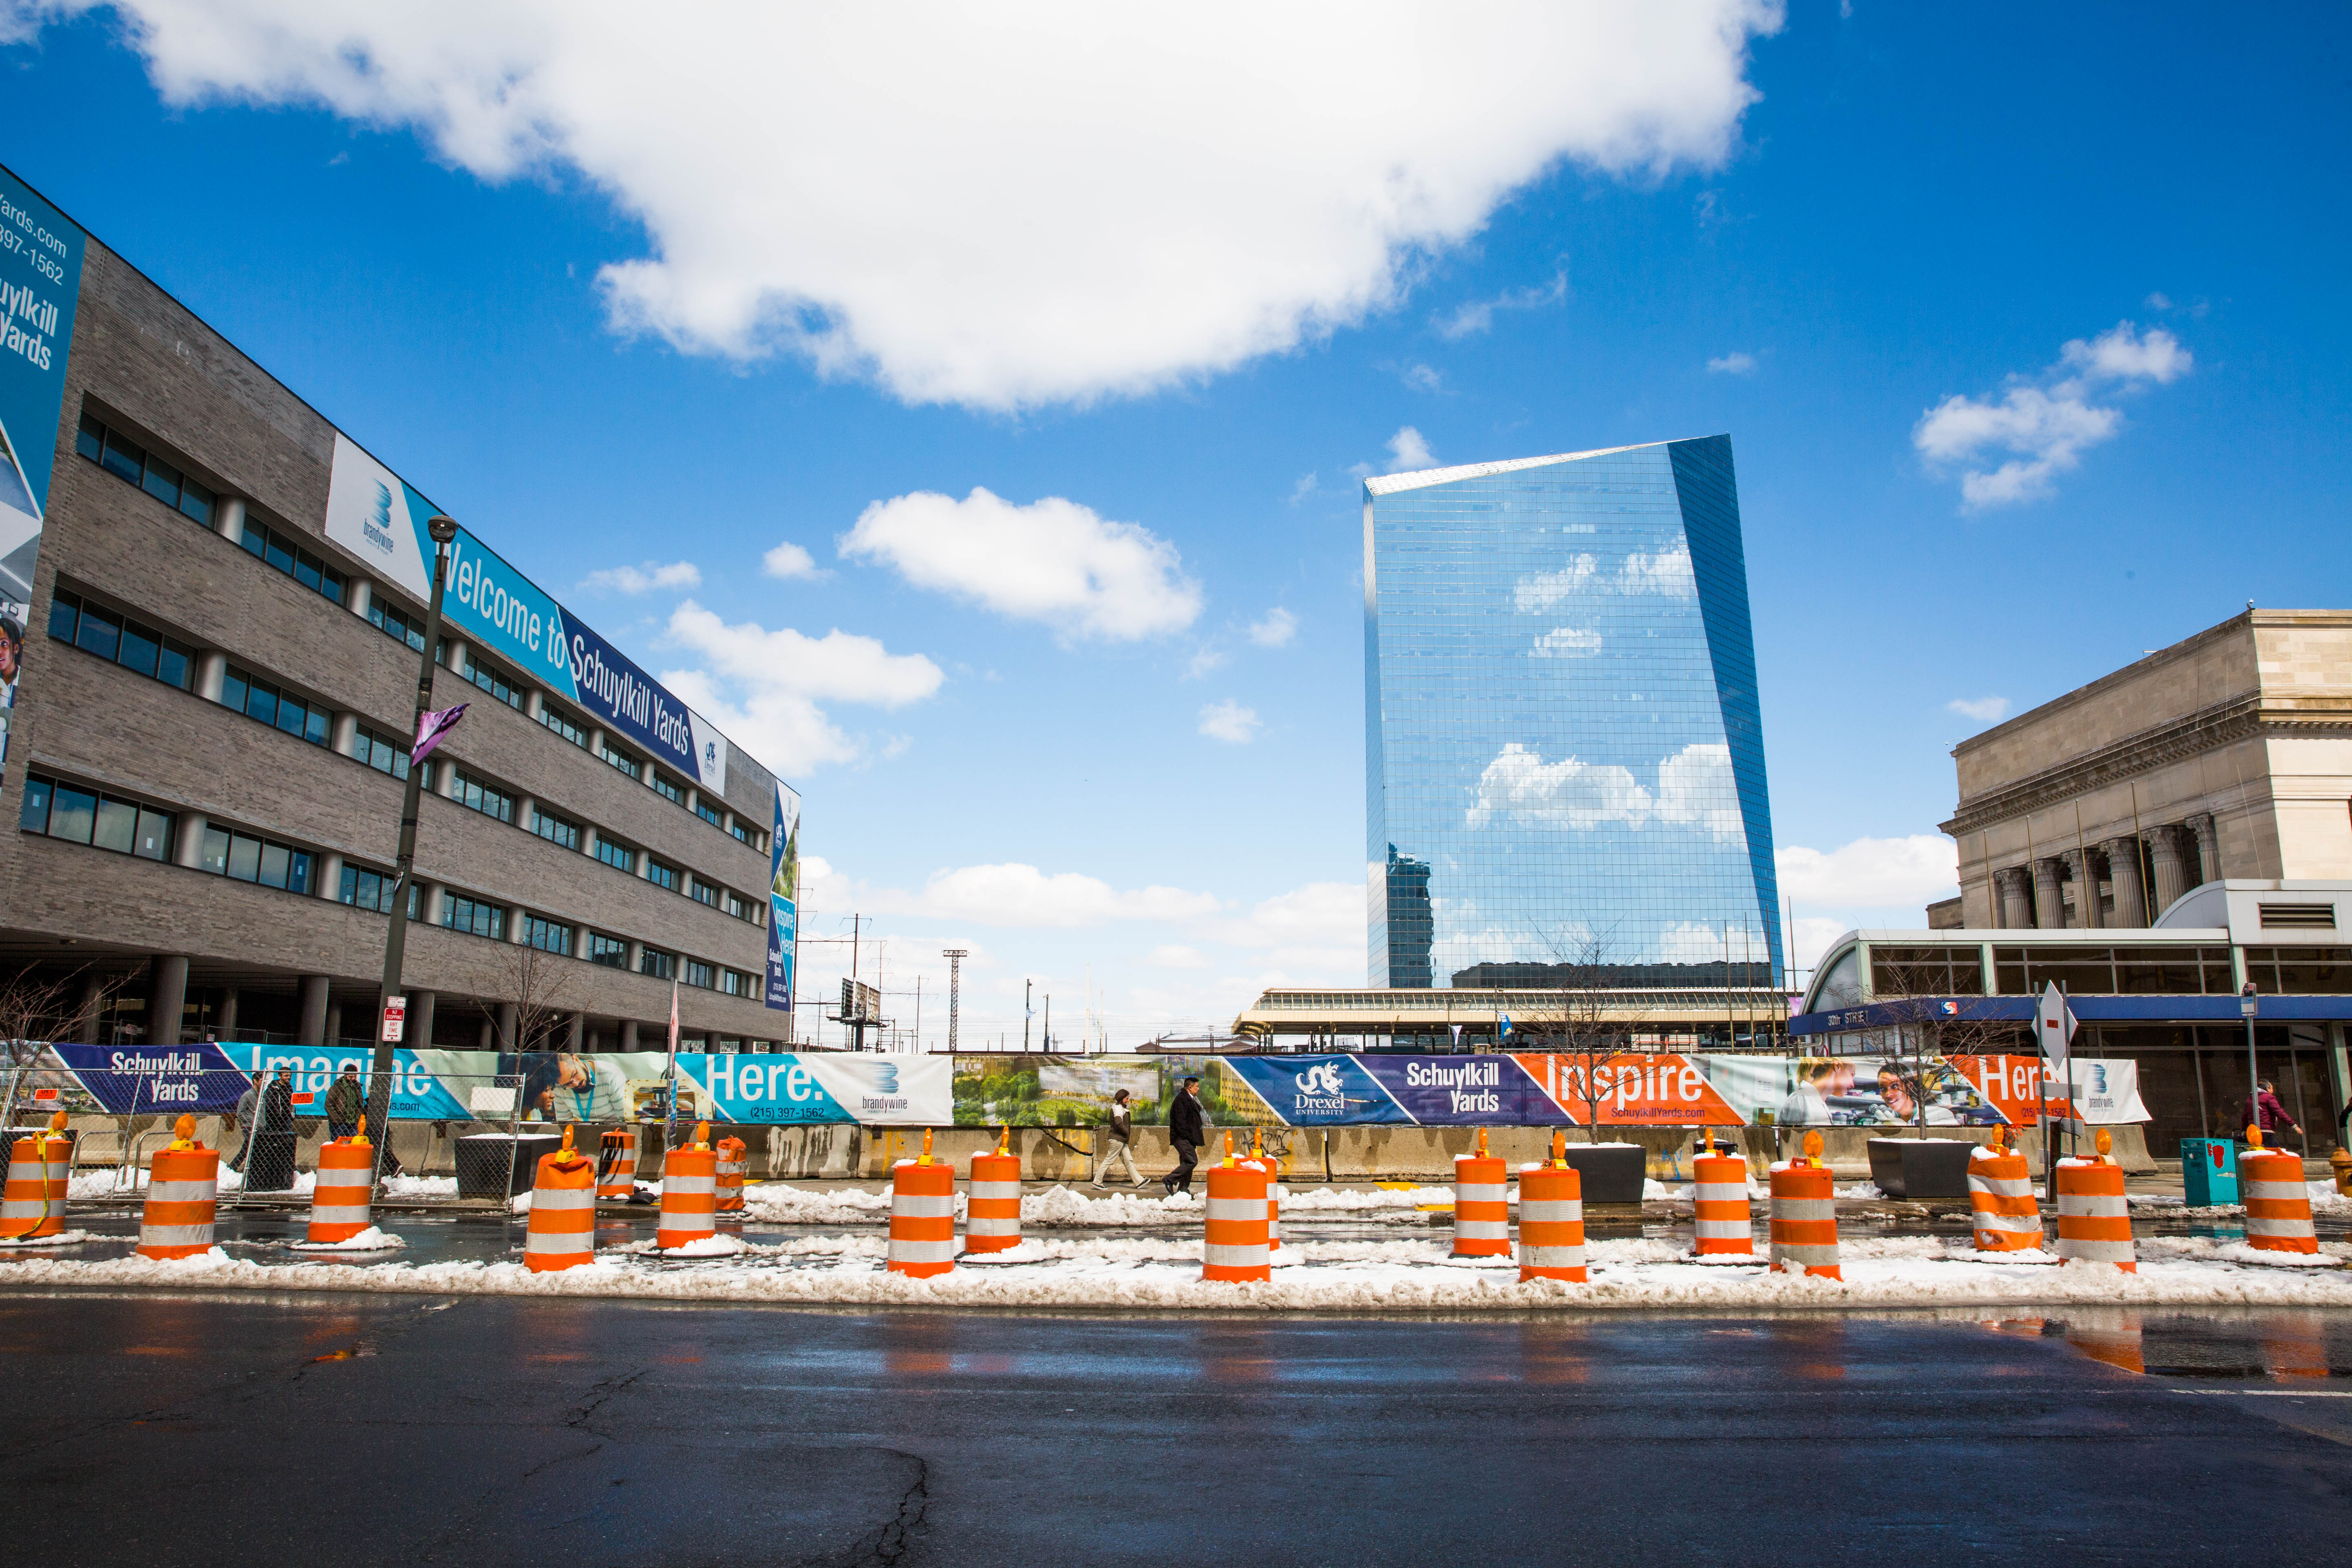 Street improvements and closures around drexel s - Drexel planning design and construction ...